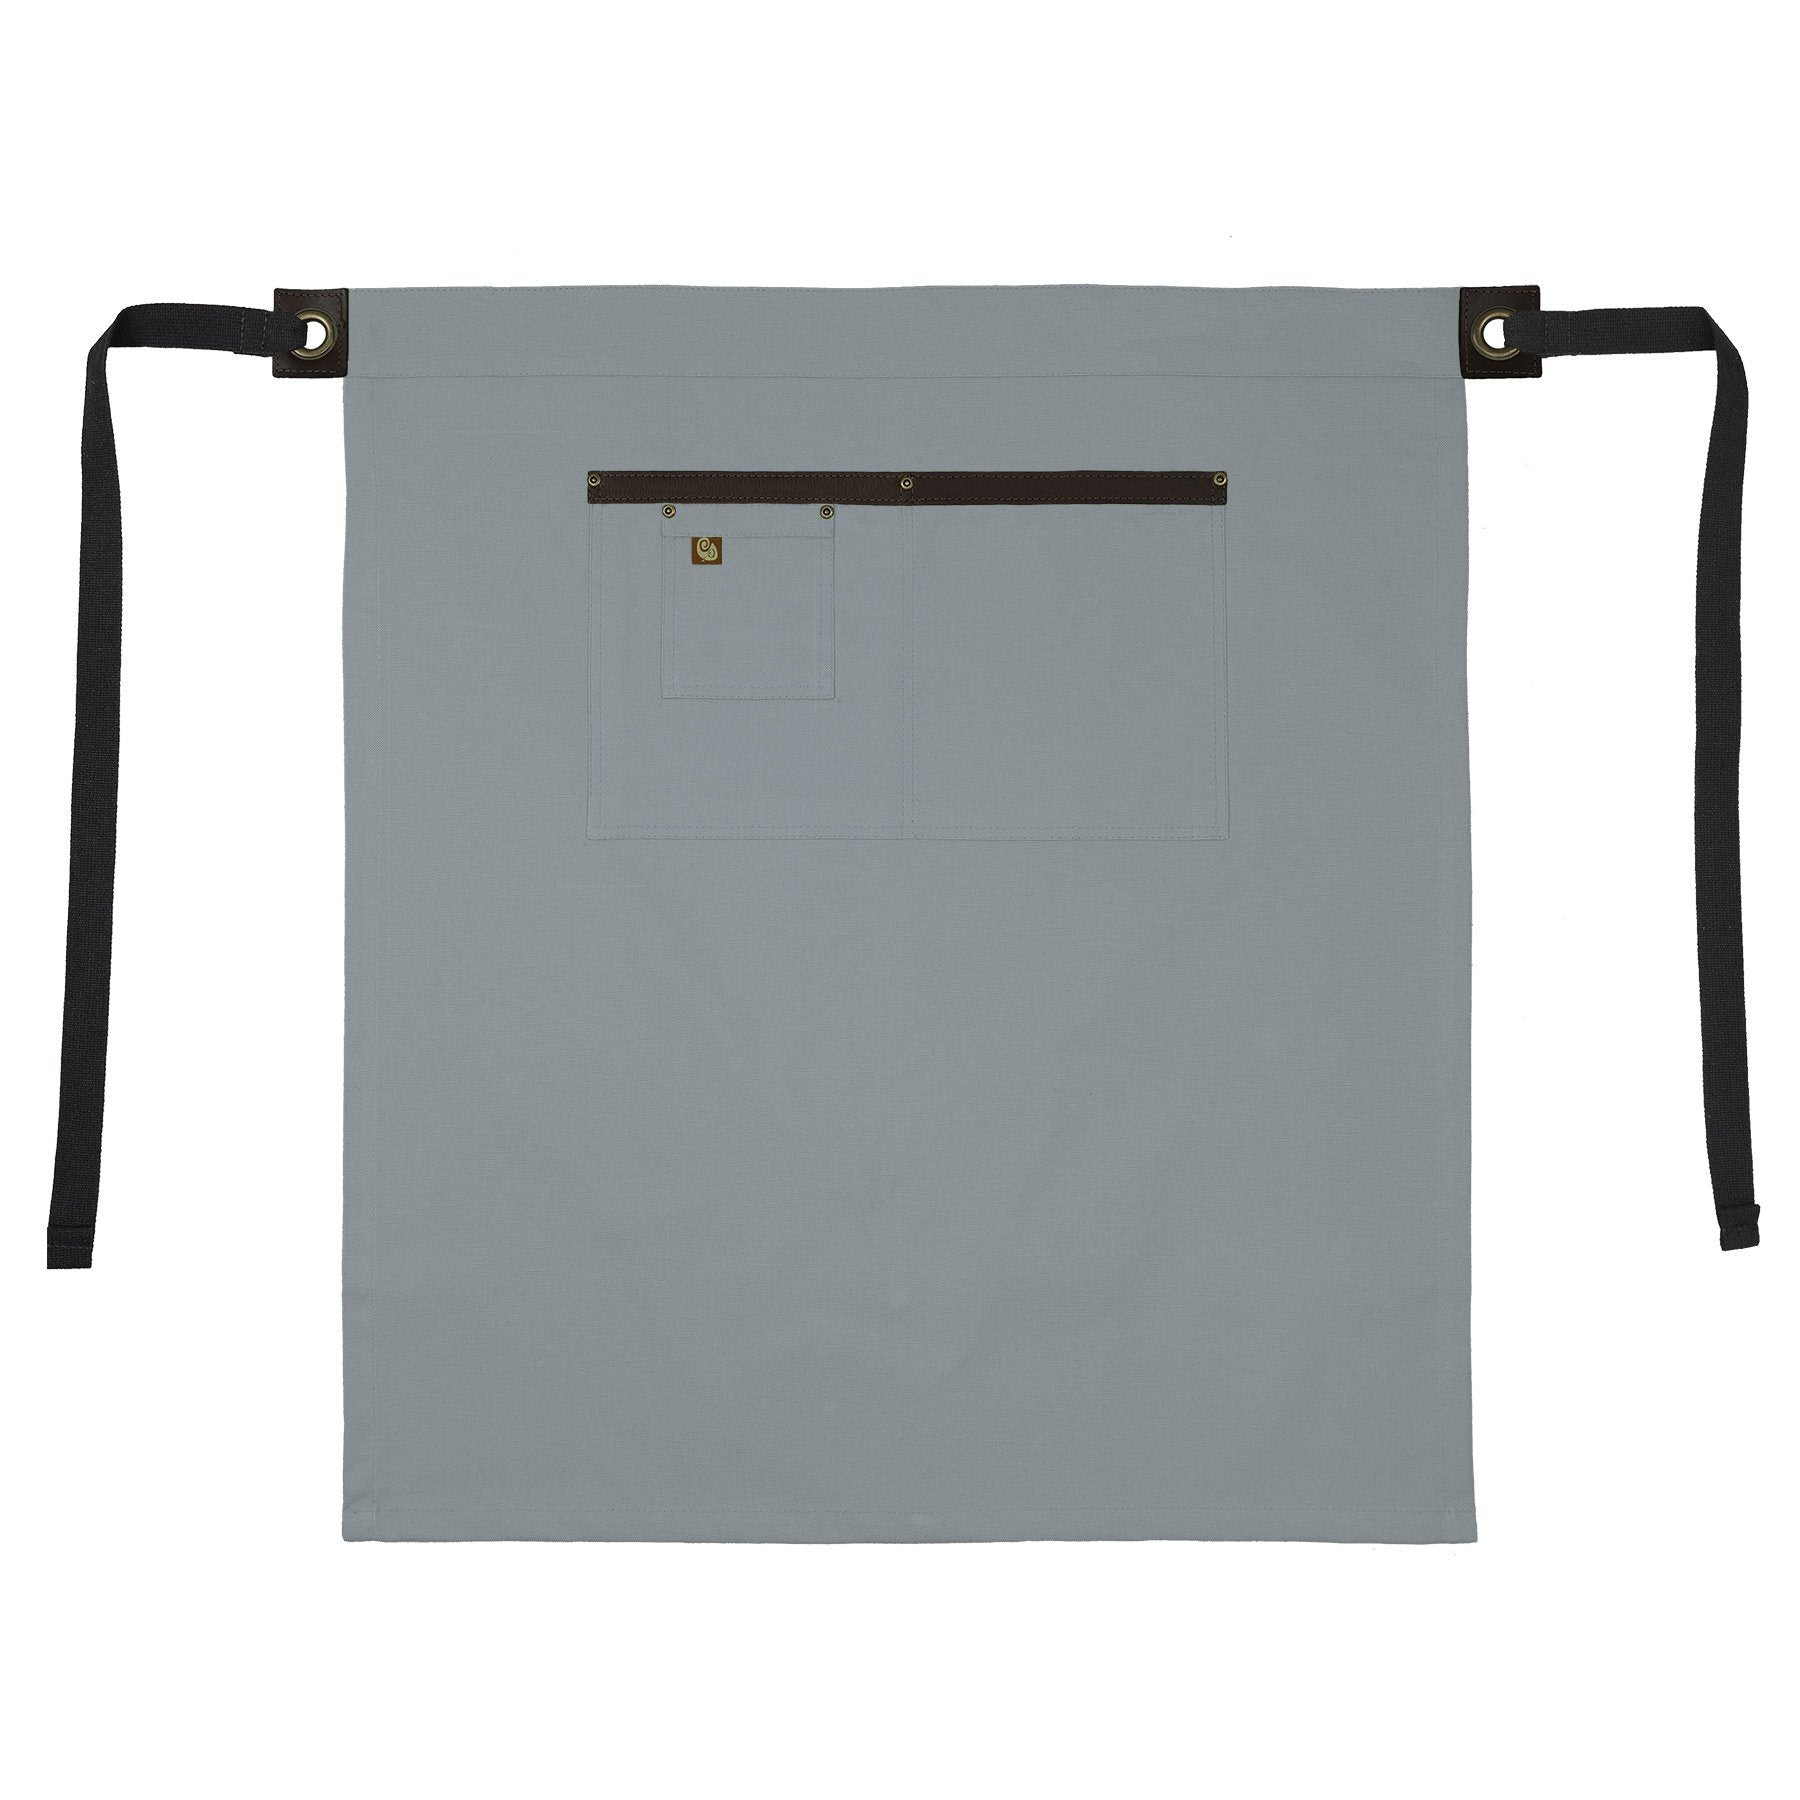 Koda Blackshaw Euro Bistro Apron (Light Grey)